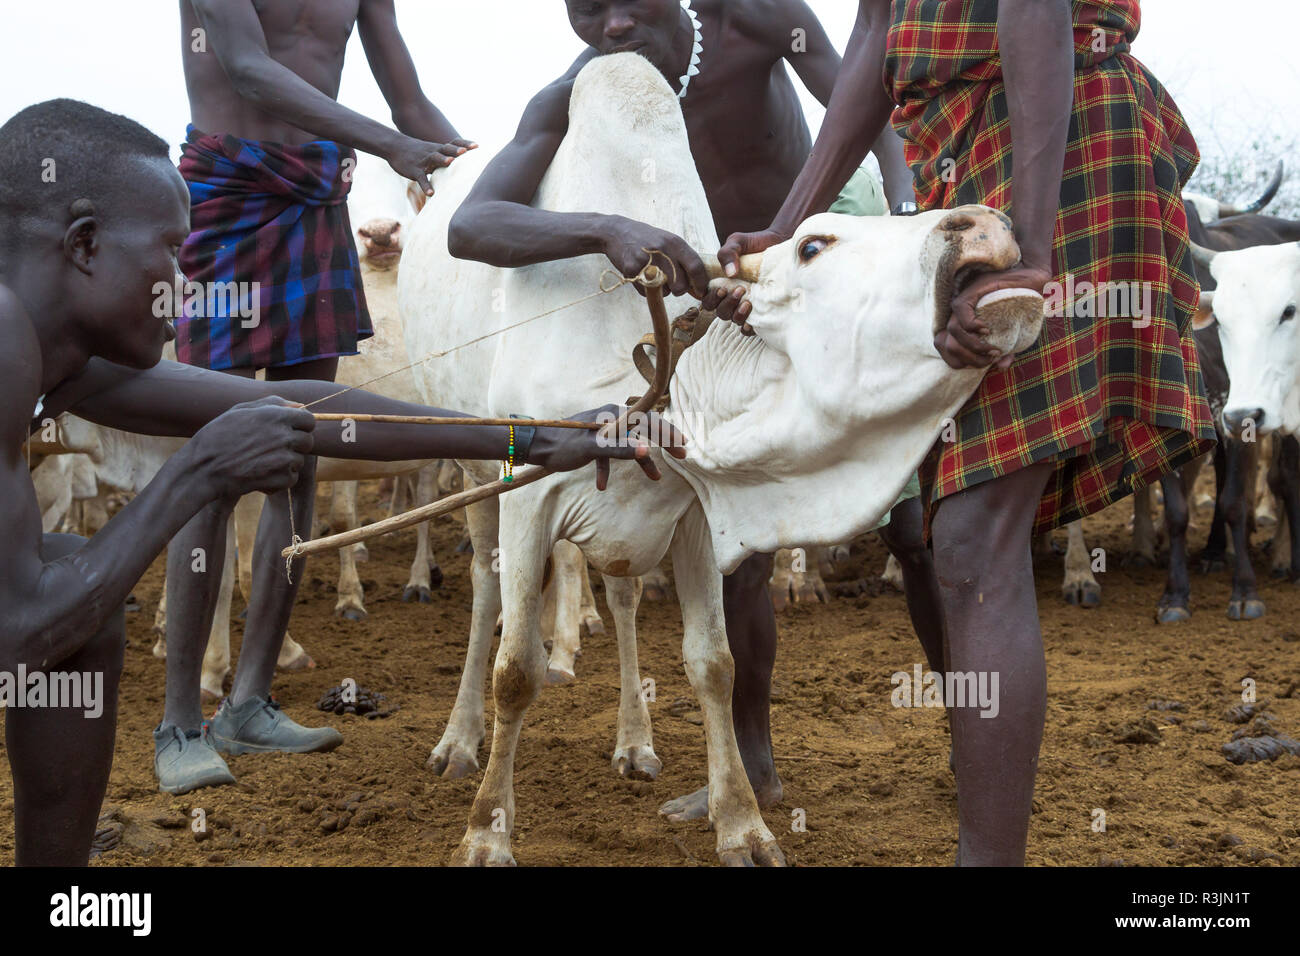 Africa, Ethiopia, Southern Omo Valley, Nyangatom Tribe. Men of the Nyangatom tribe prepare a steer to give blood. - Stock Image